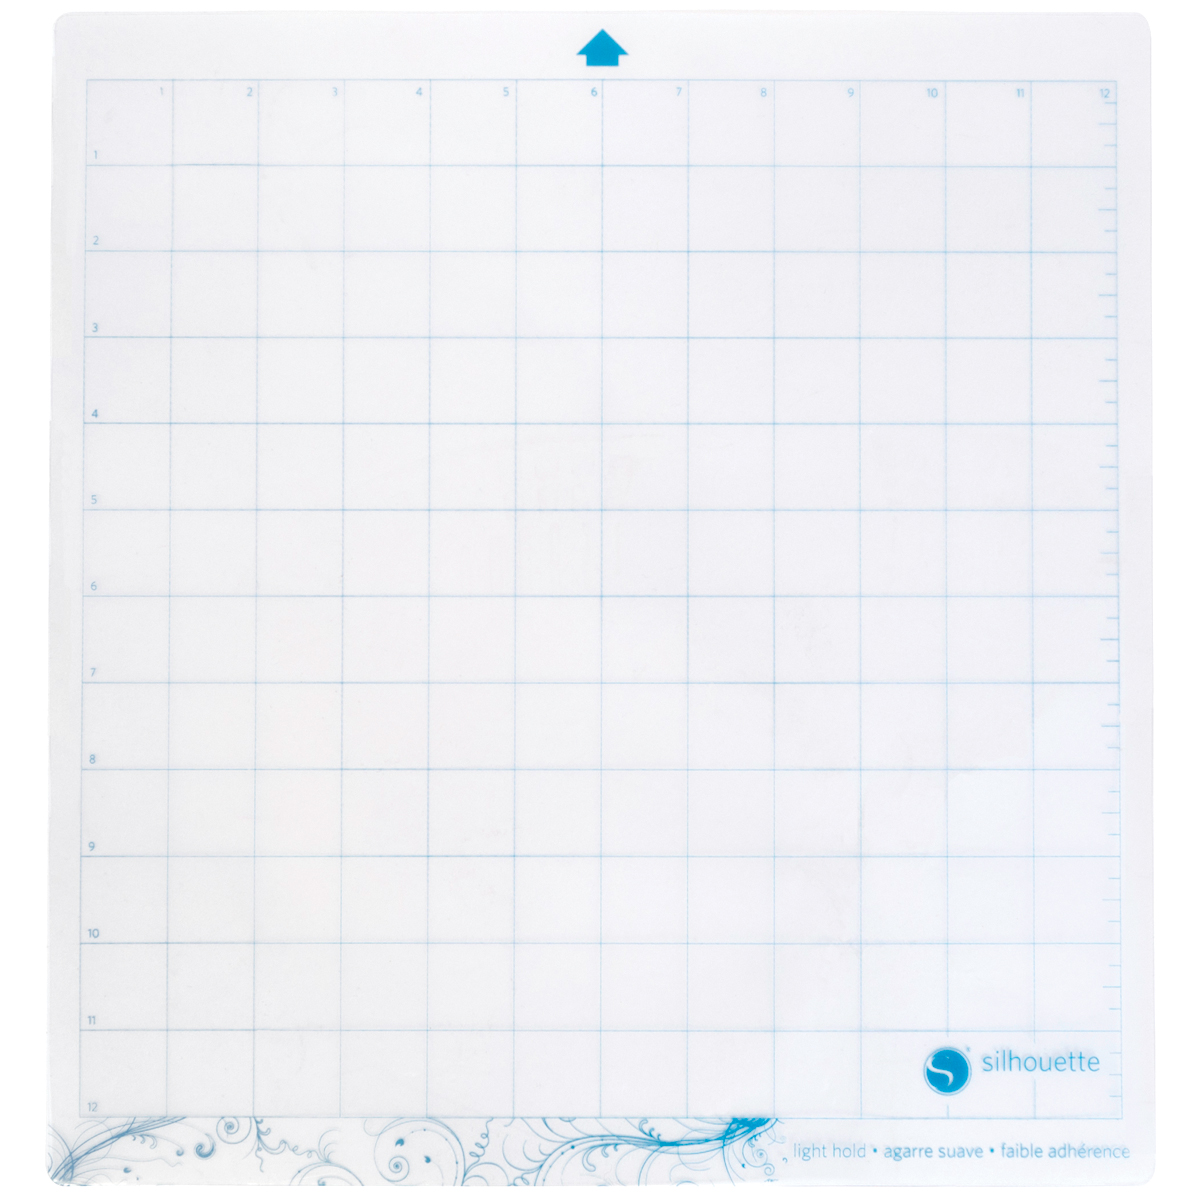 Silhouette Cameo - Light Hold Cutting Mat 30 x 30 cm